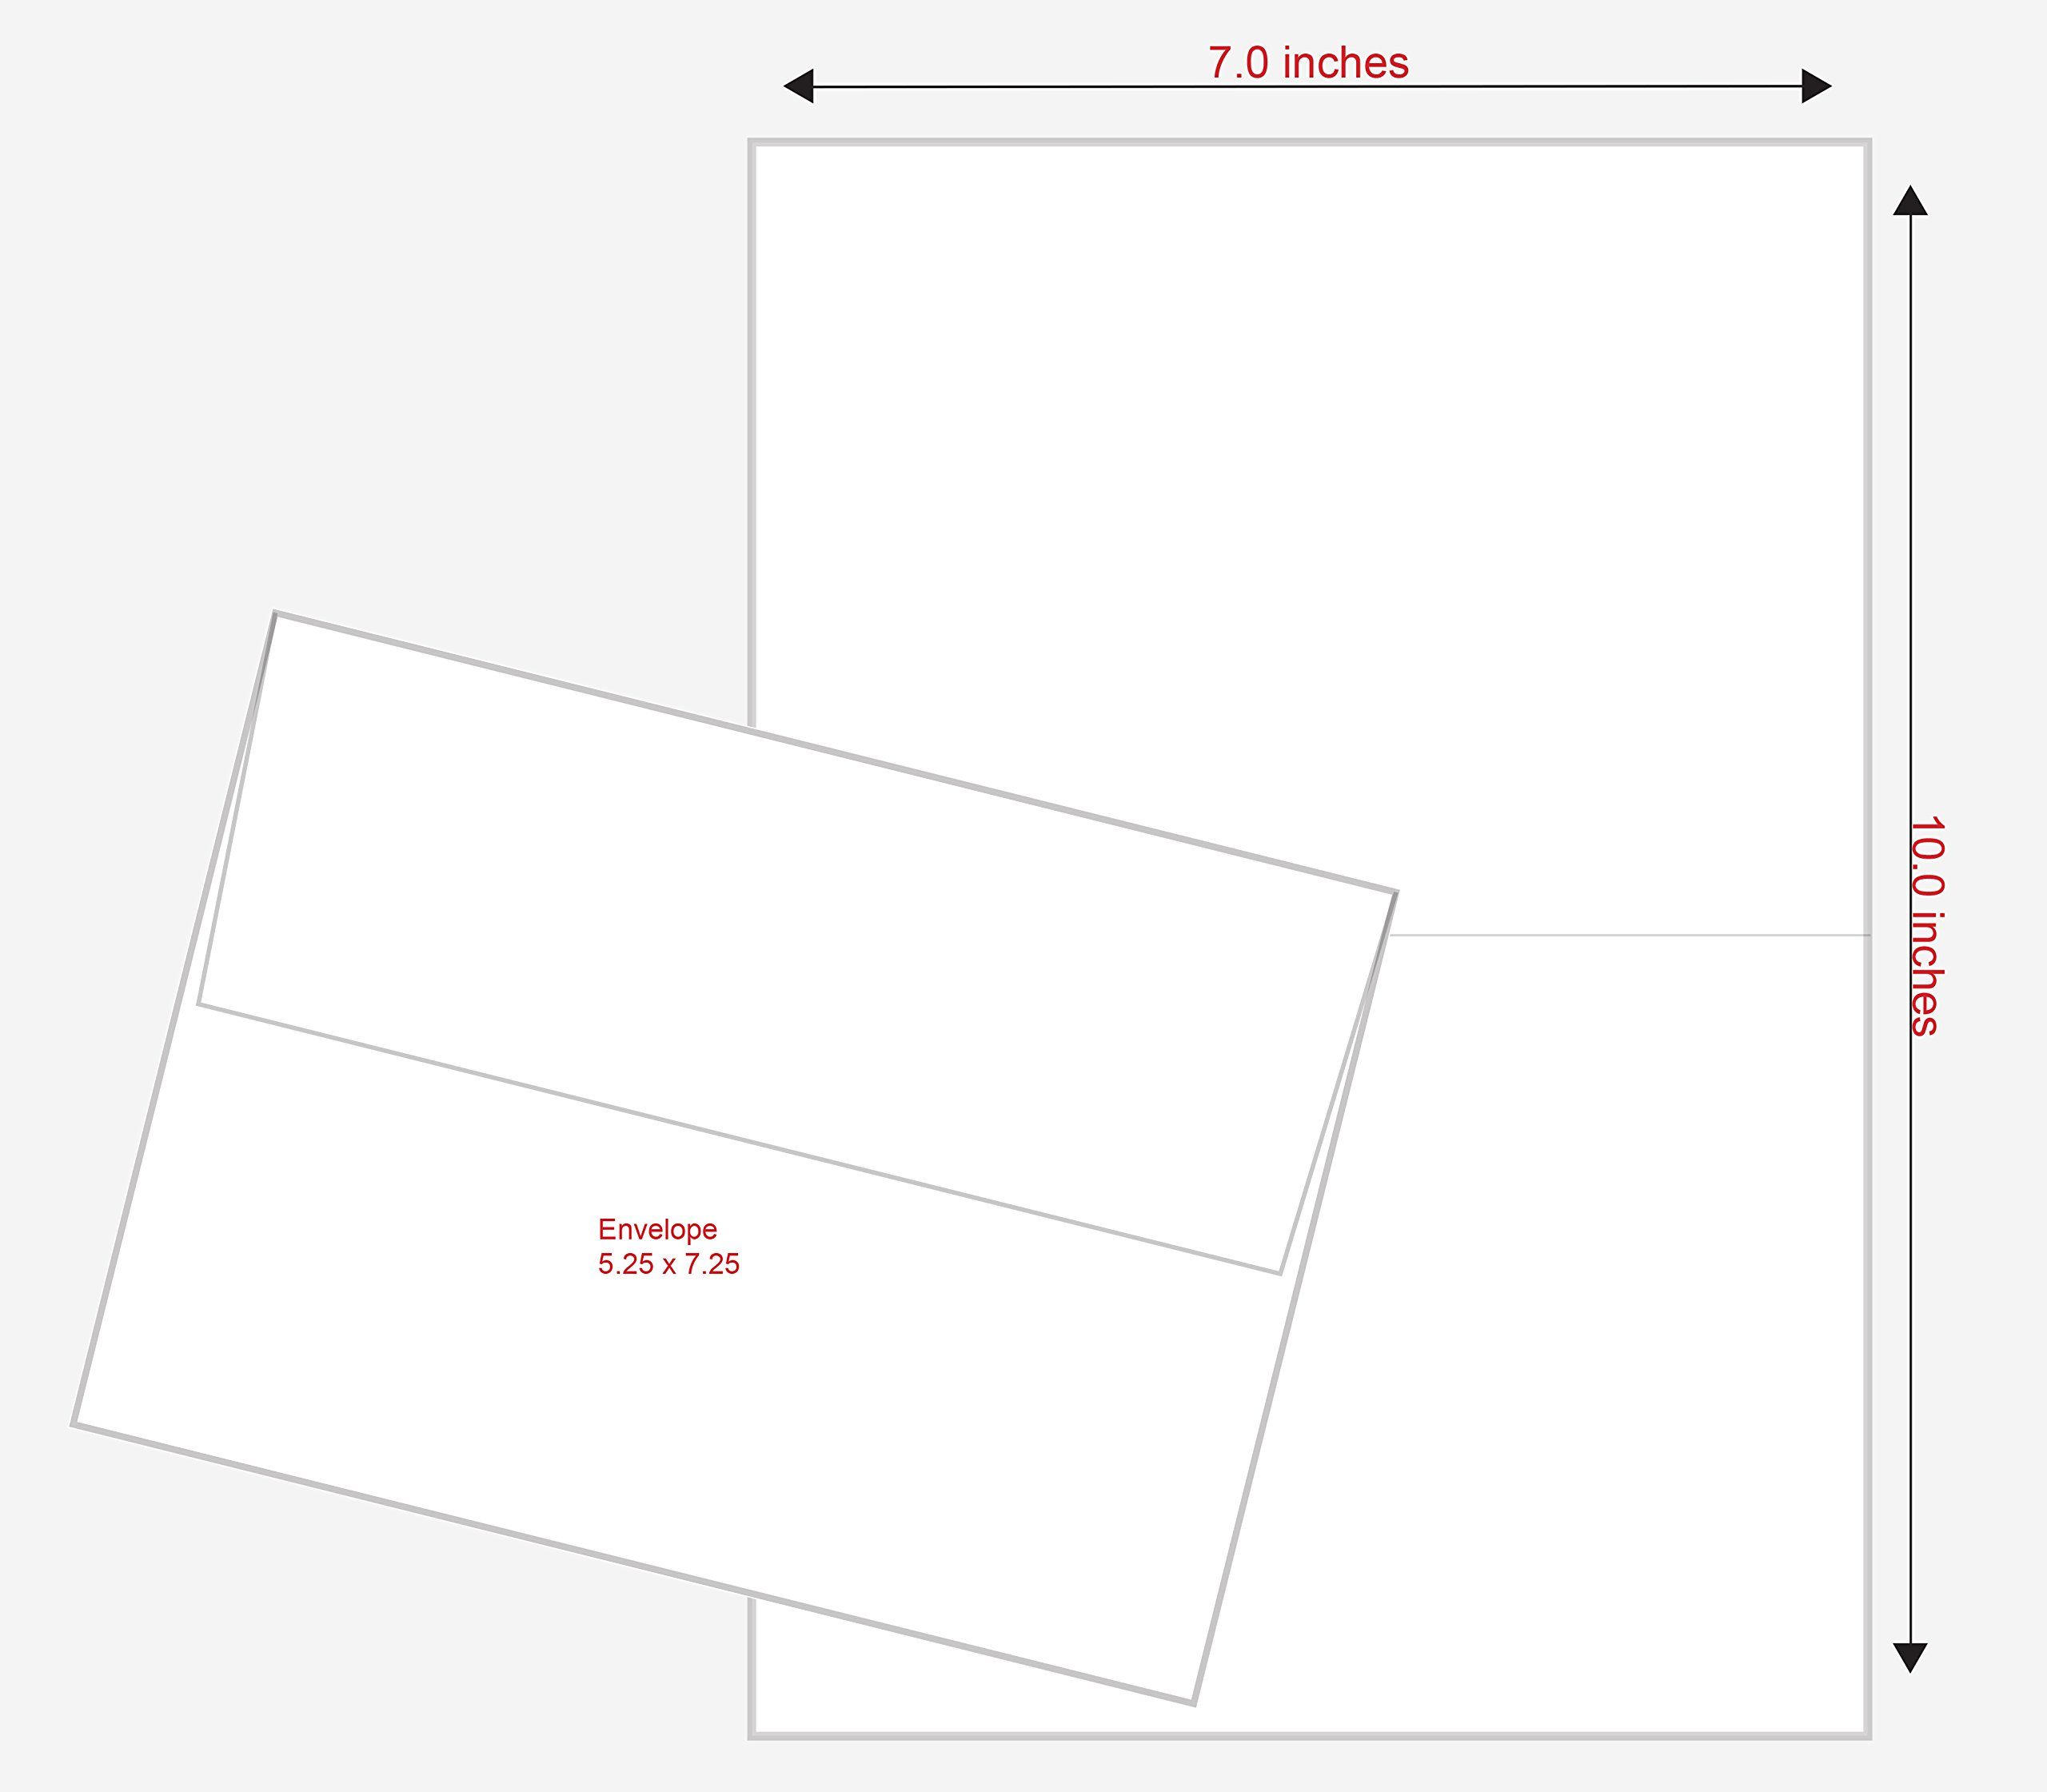 graphic regarding Printable Greeting Card Stock called Inexpensive Card Inventory Envelopes, locate Card Inventory Envelopes offers